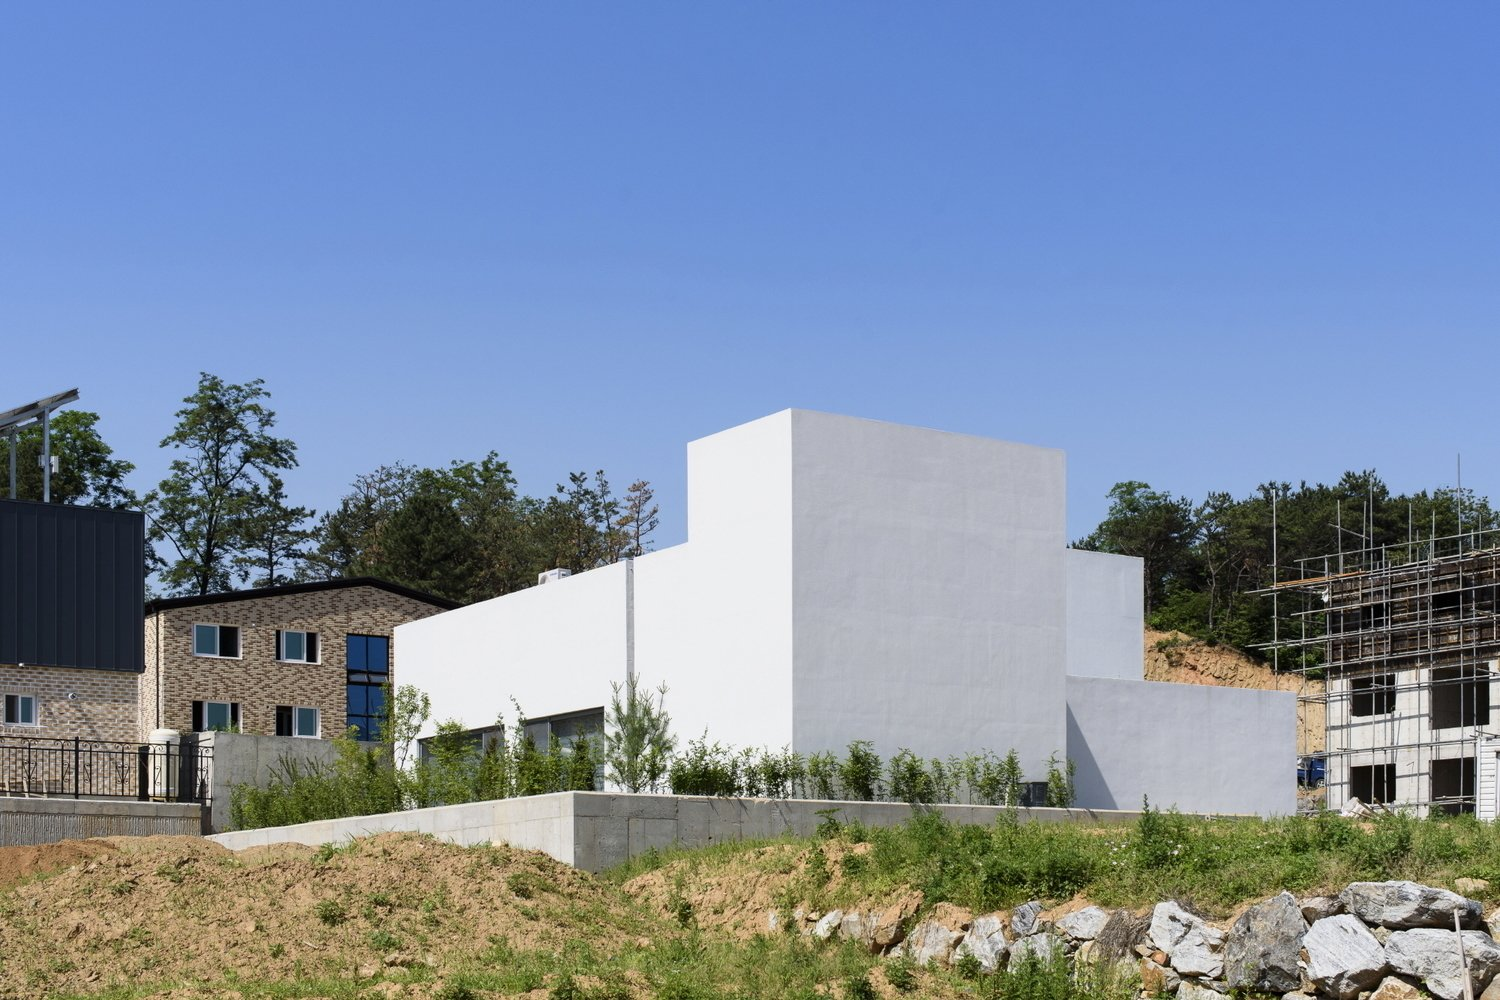 Photo 5 of 6 in Lighthouse Residence by LEESLIST & Leejae Architects